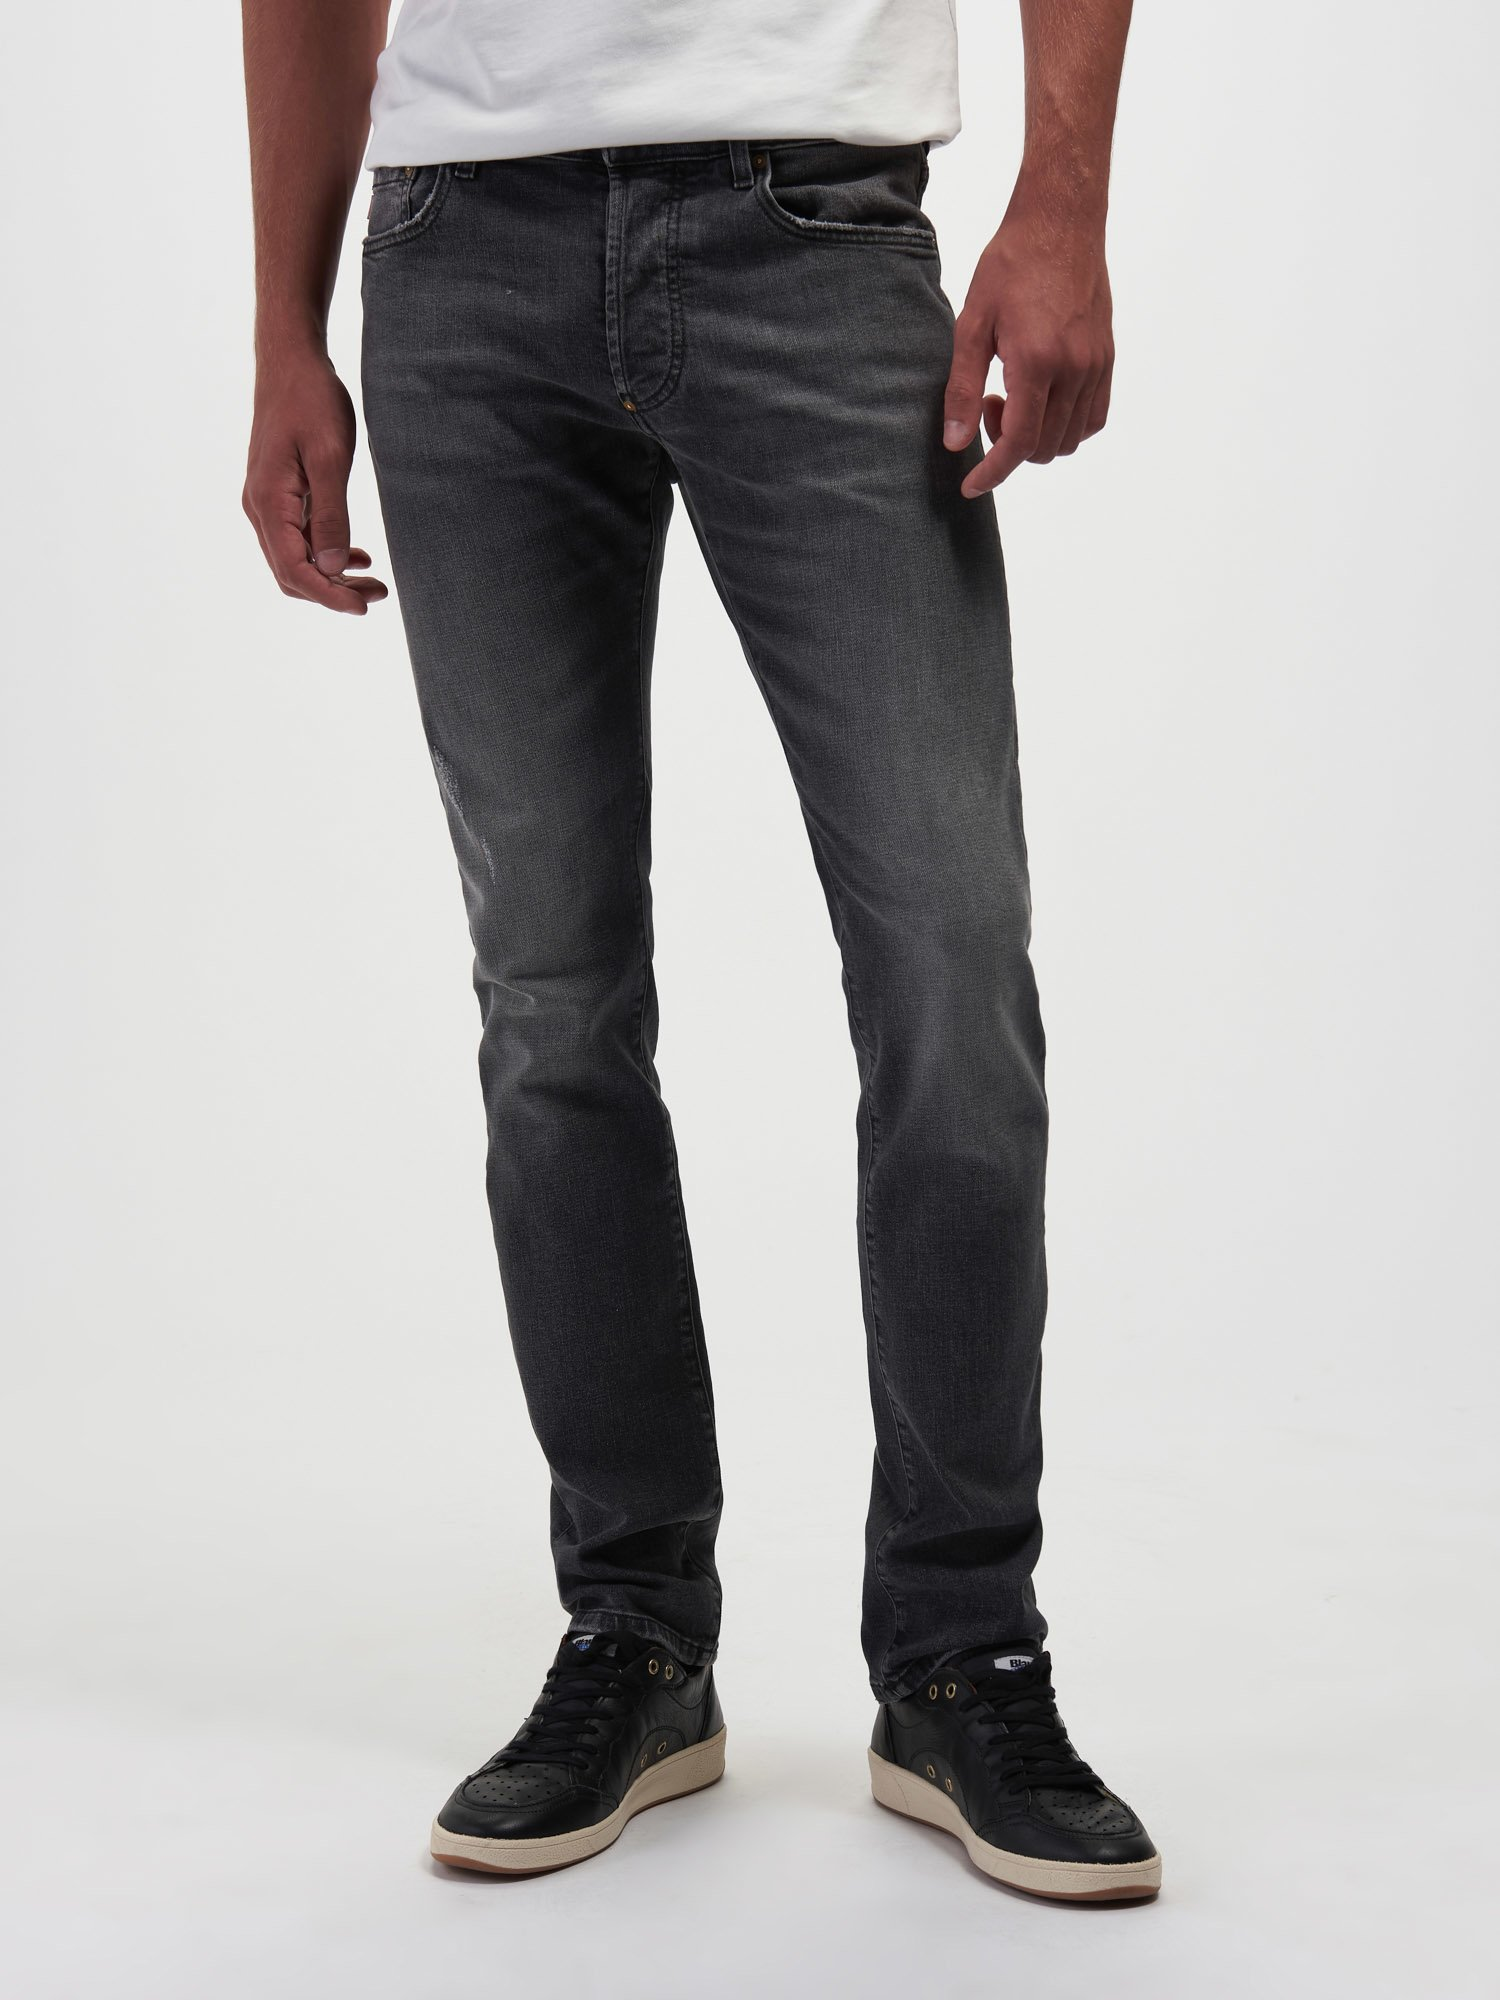 Blauer - WORN-EFFECT JEANS - Ripped Stone Wash - Blauer